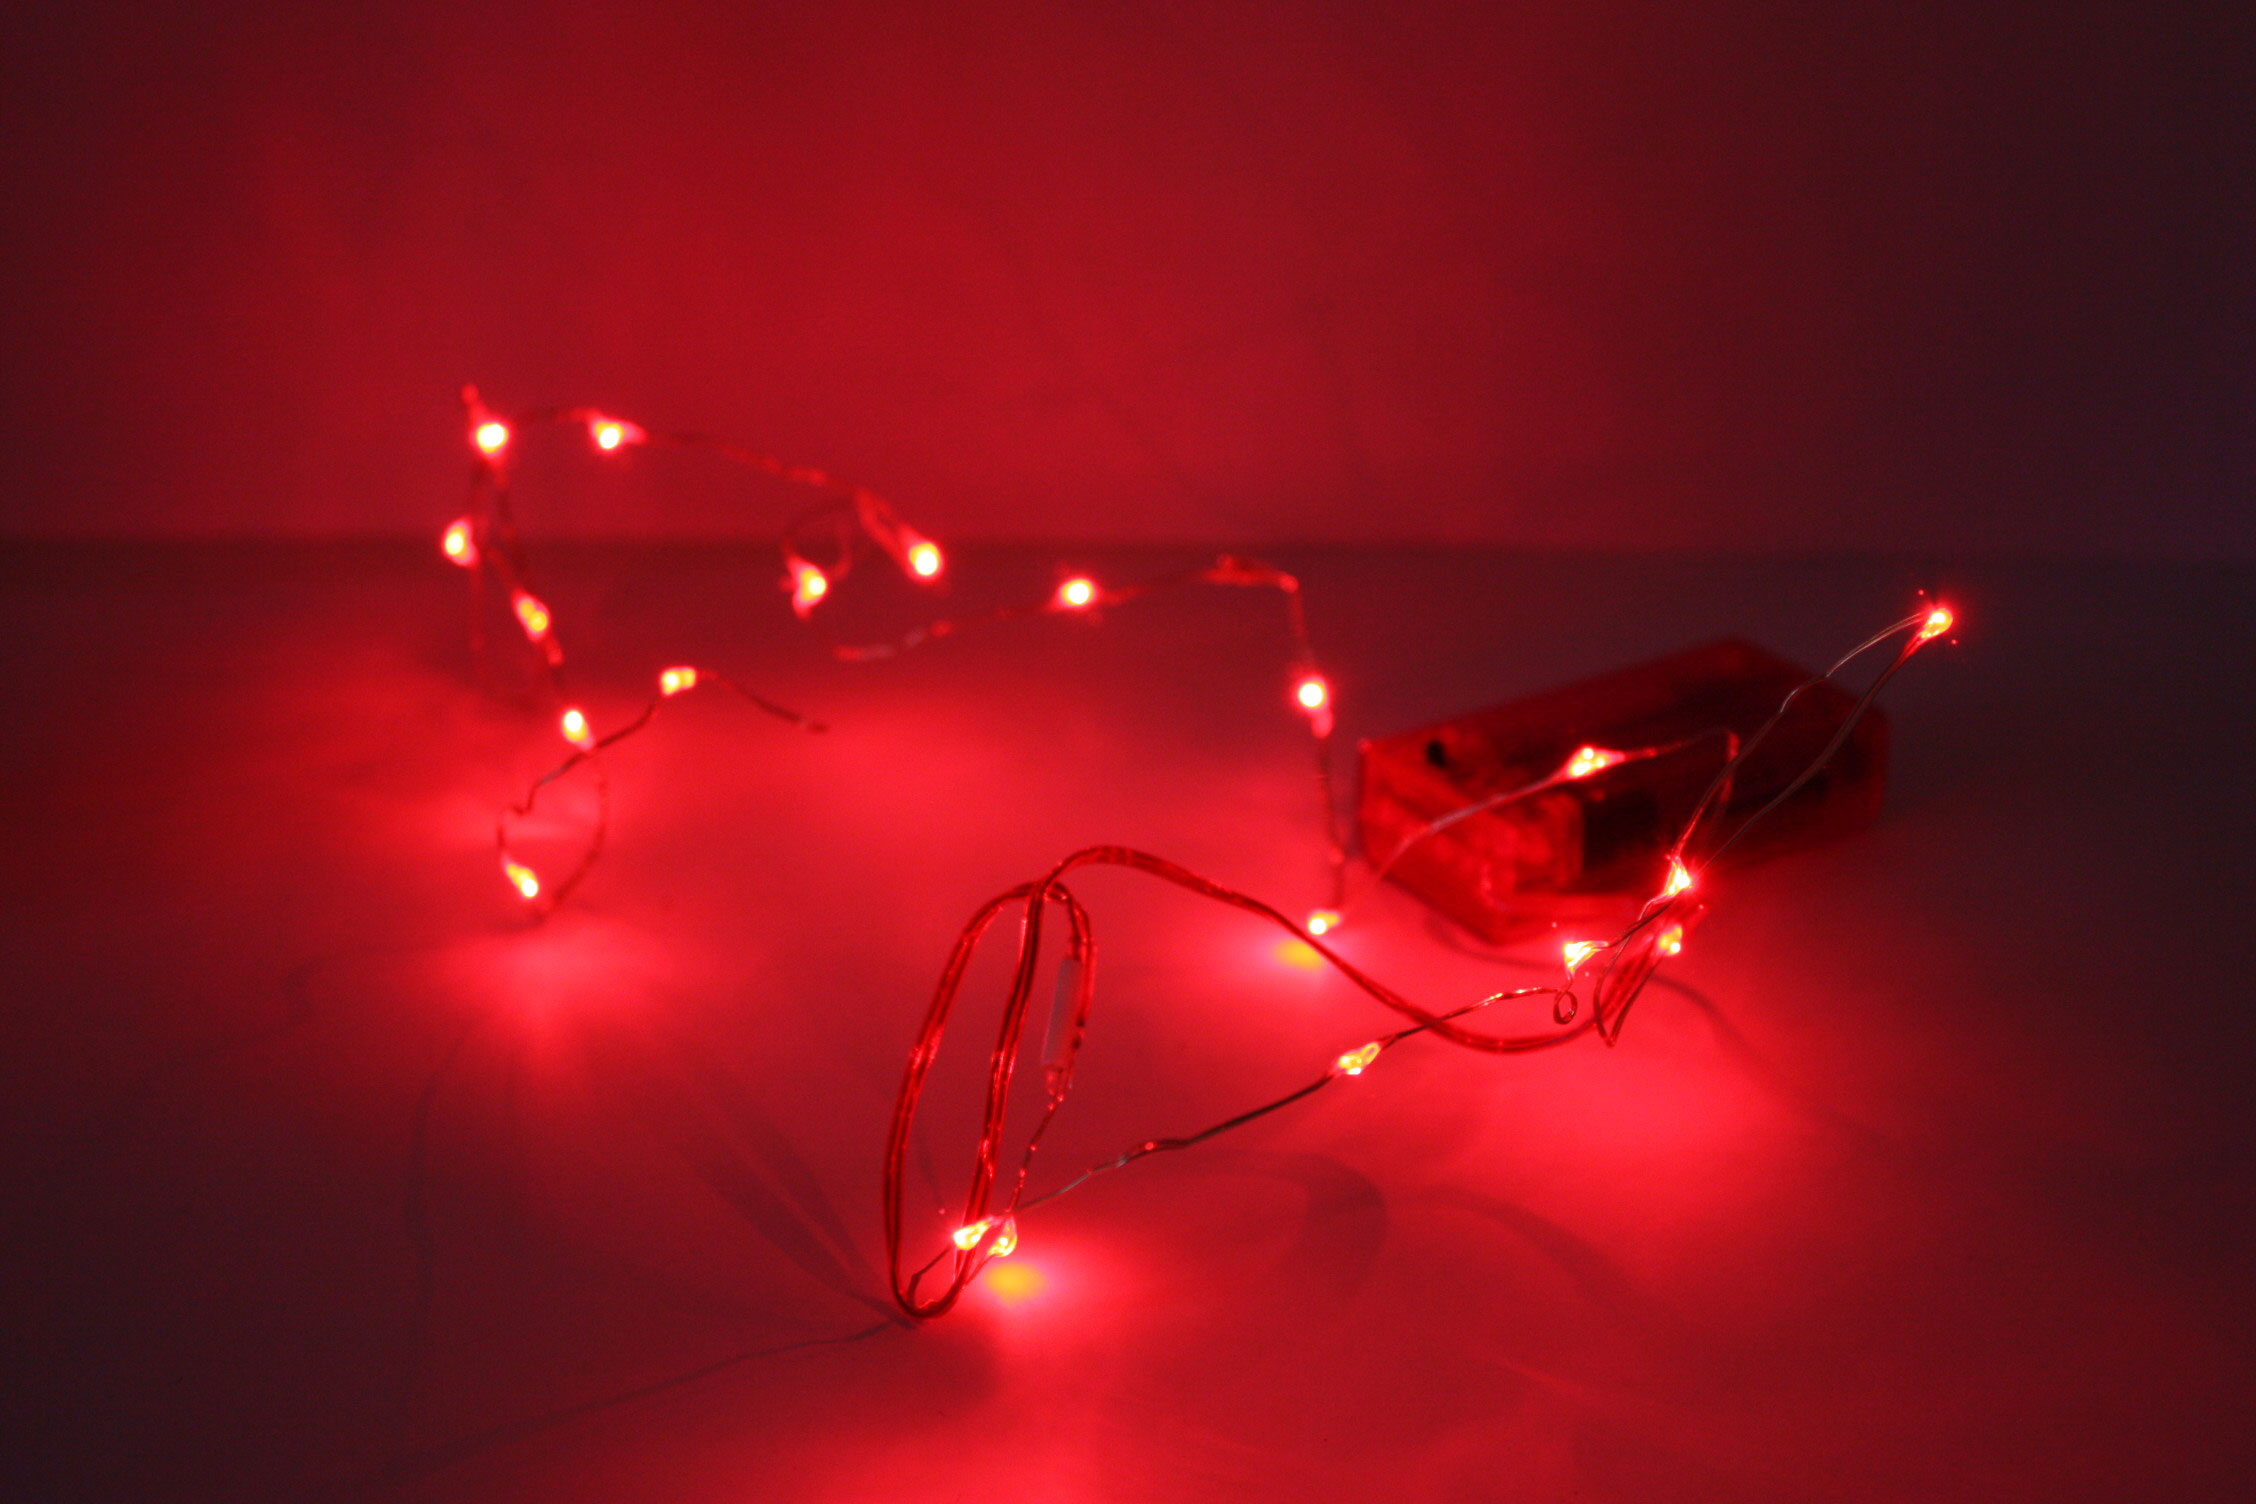 58881330797457guirlande-led-rouge.jpg